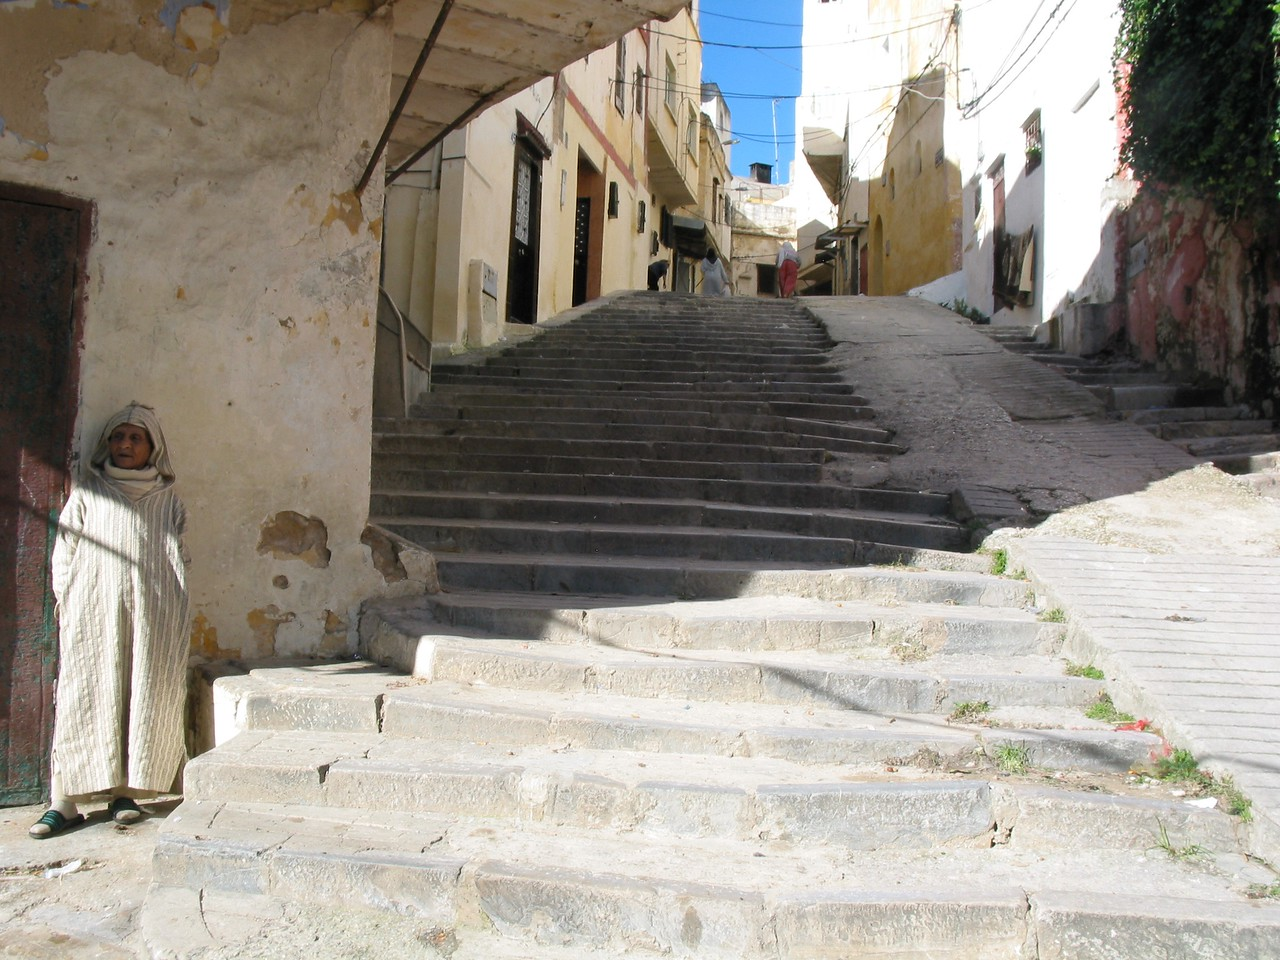 The old city is a labrynth of narrow alleyways, paved paths and stairs.